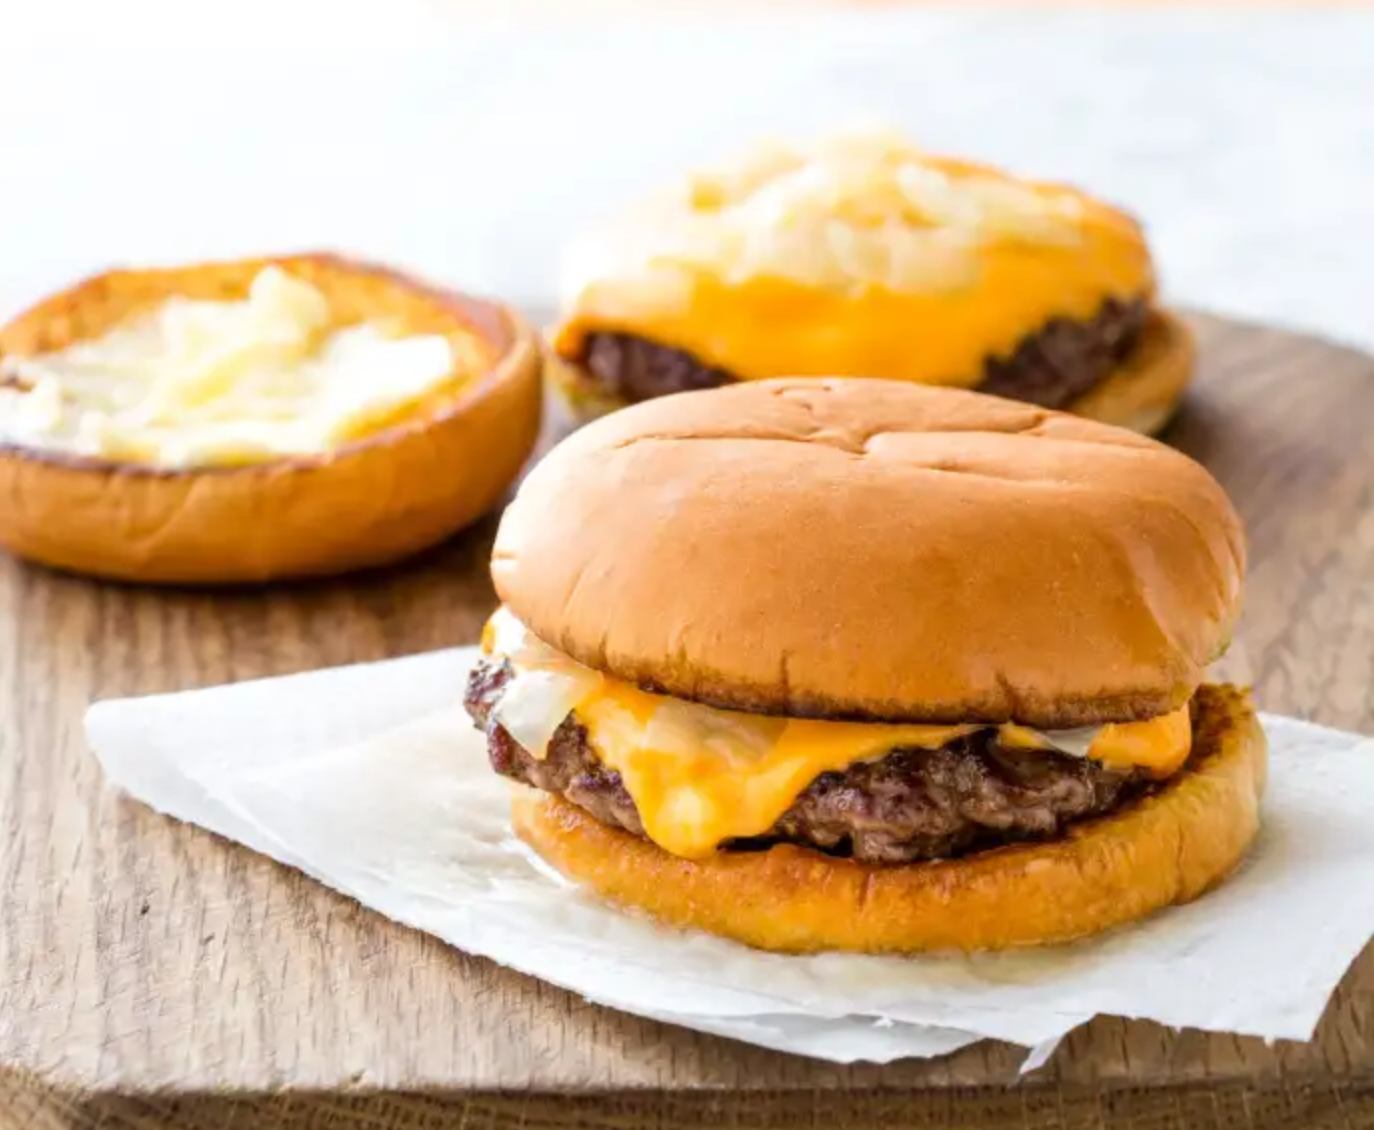 America's Test Kitchen offers its spin on a Solly's Wisconsin butter burger